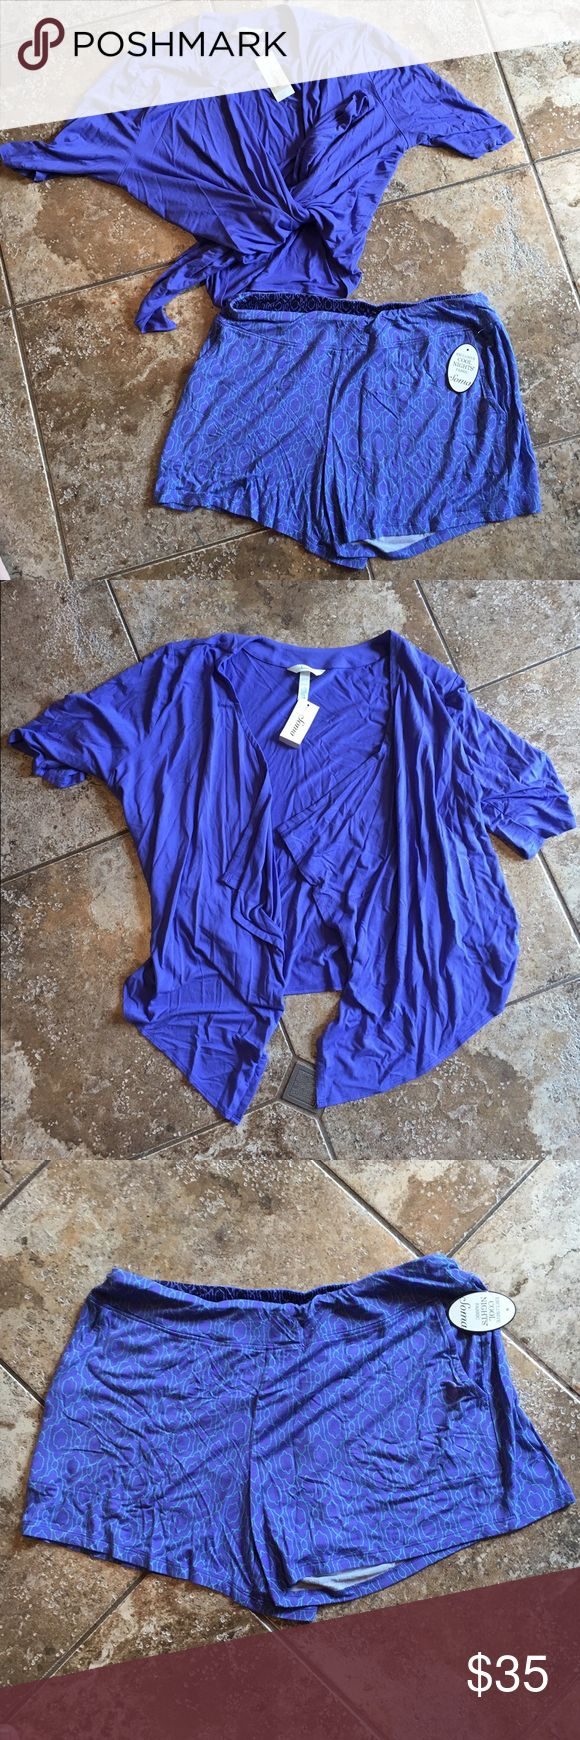 "NWT Soma women's two piece pajama set, M NEW with tags, women's pajama set, Soma brand. ""Cool Nights"" fabric is lightweight and soft. Size medium. Perfect for summer! Originally $77! Purchased at outlet for $45!  Includes: -slip on shorts, elastic waistband, silk blend material, blue geo pattern, flowy/loose style. -short sleeve top, open cardigan/robe style, can be worn tied or undone, silk blend material, blue color, fit is loose but if tied would be form fitting. Will require a tank or…"